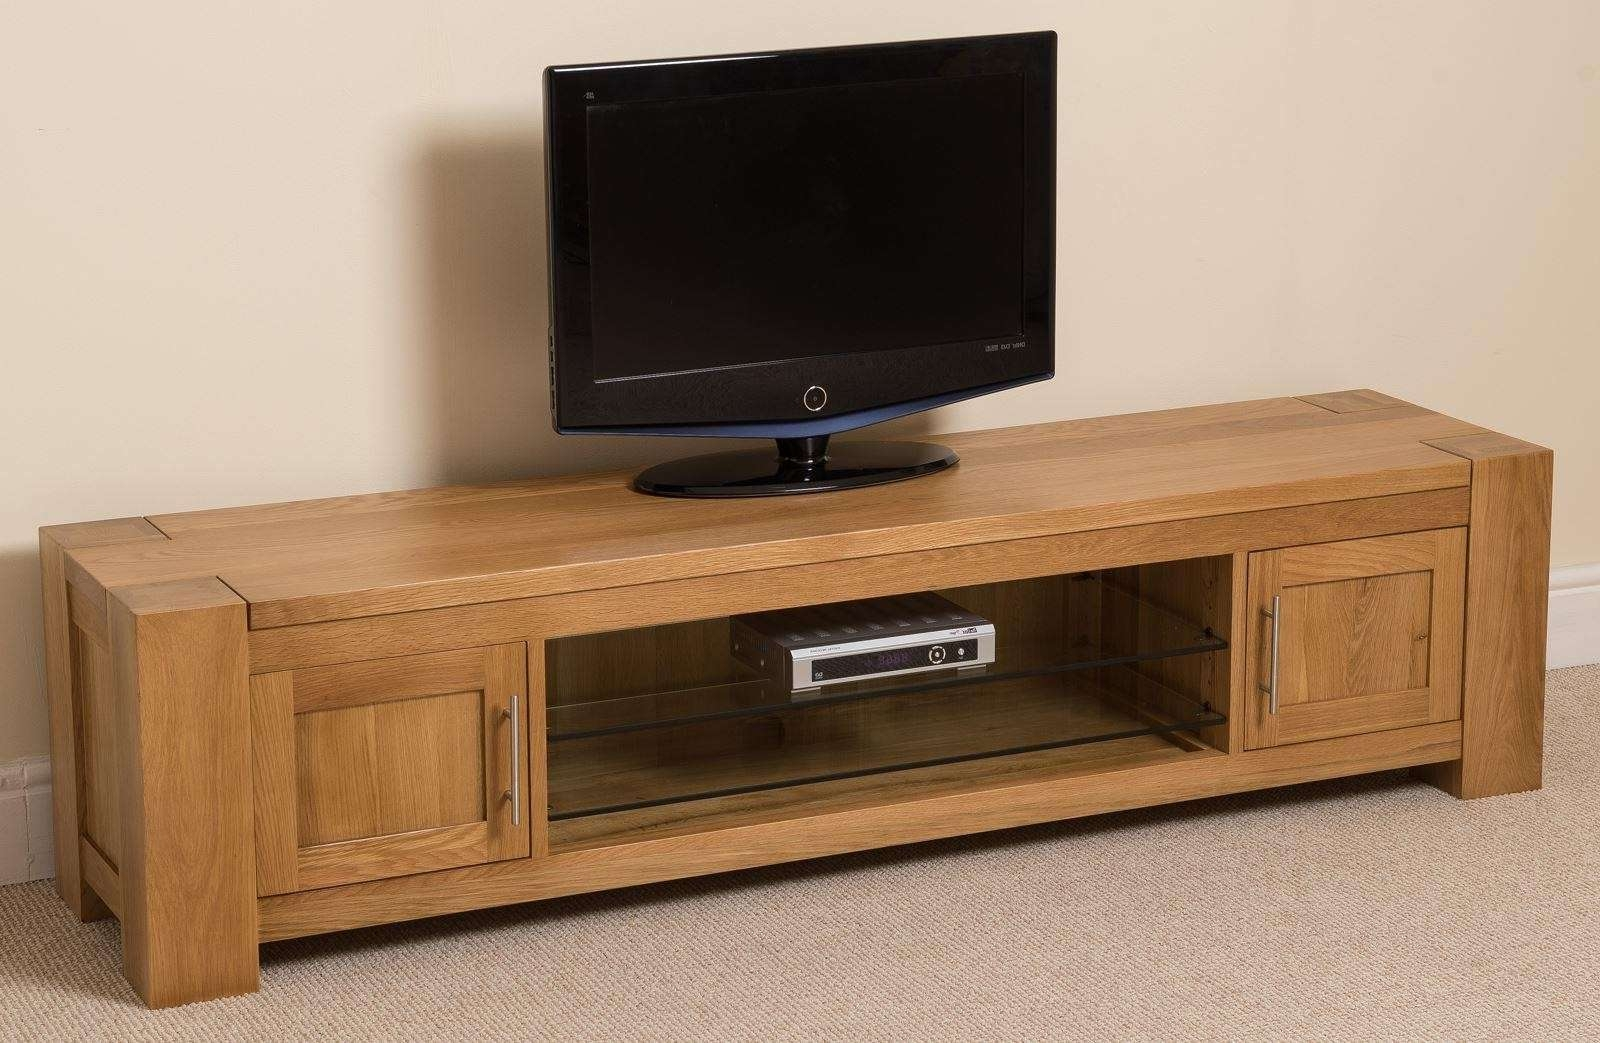 Kuba Solid Widescreen Tv Cabinet | Oak Furniture King For Wide Screen Tv Stands (View 8 of 15)